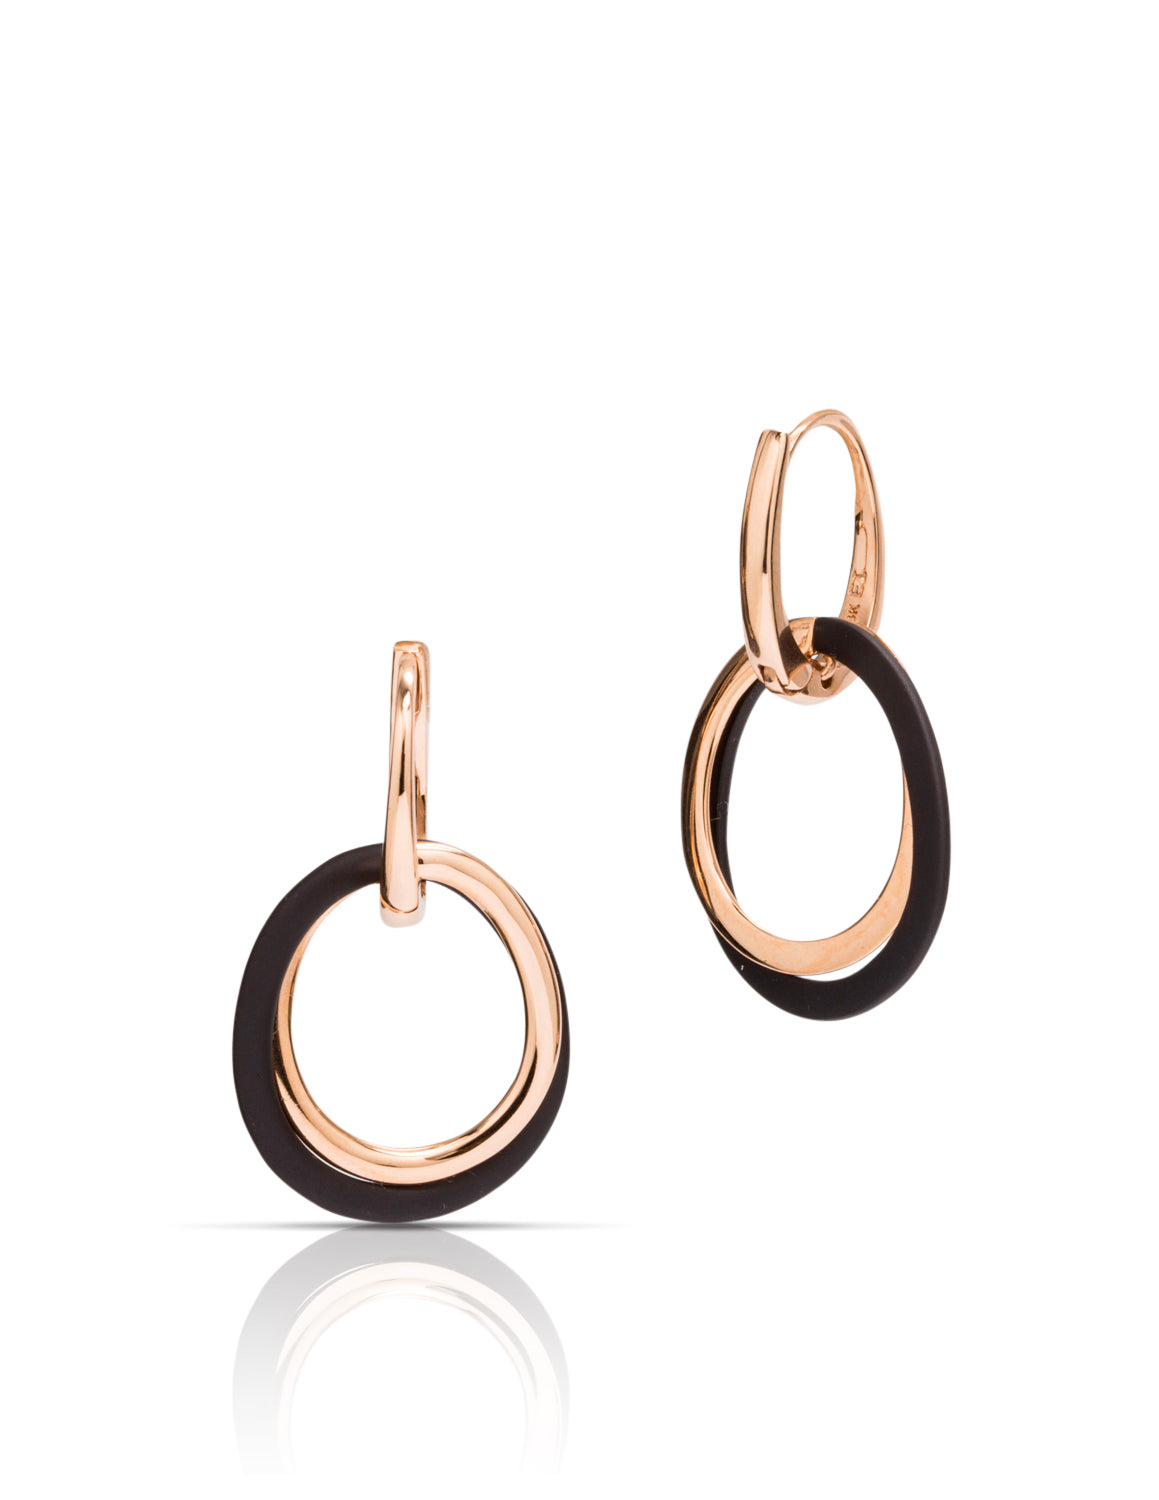 Blackened Steel and Rose Gold Earrings - Charles Koll Jewellers